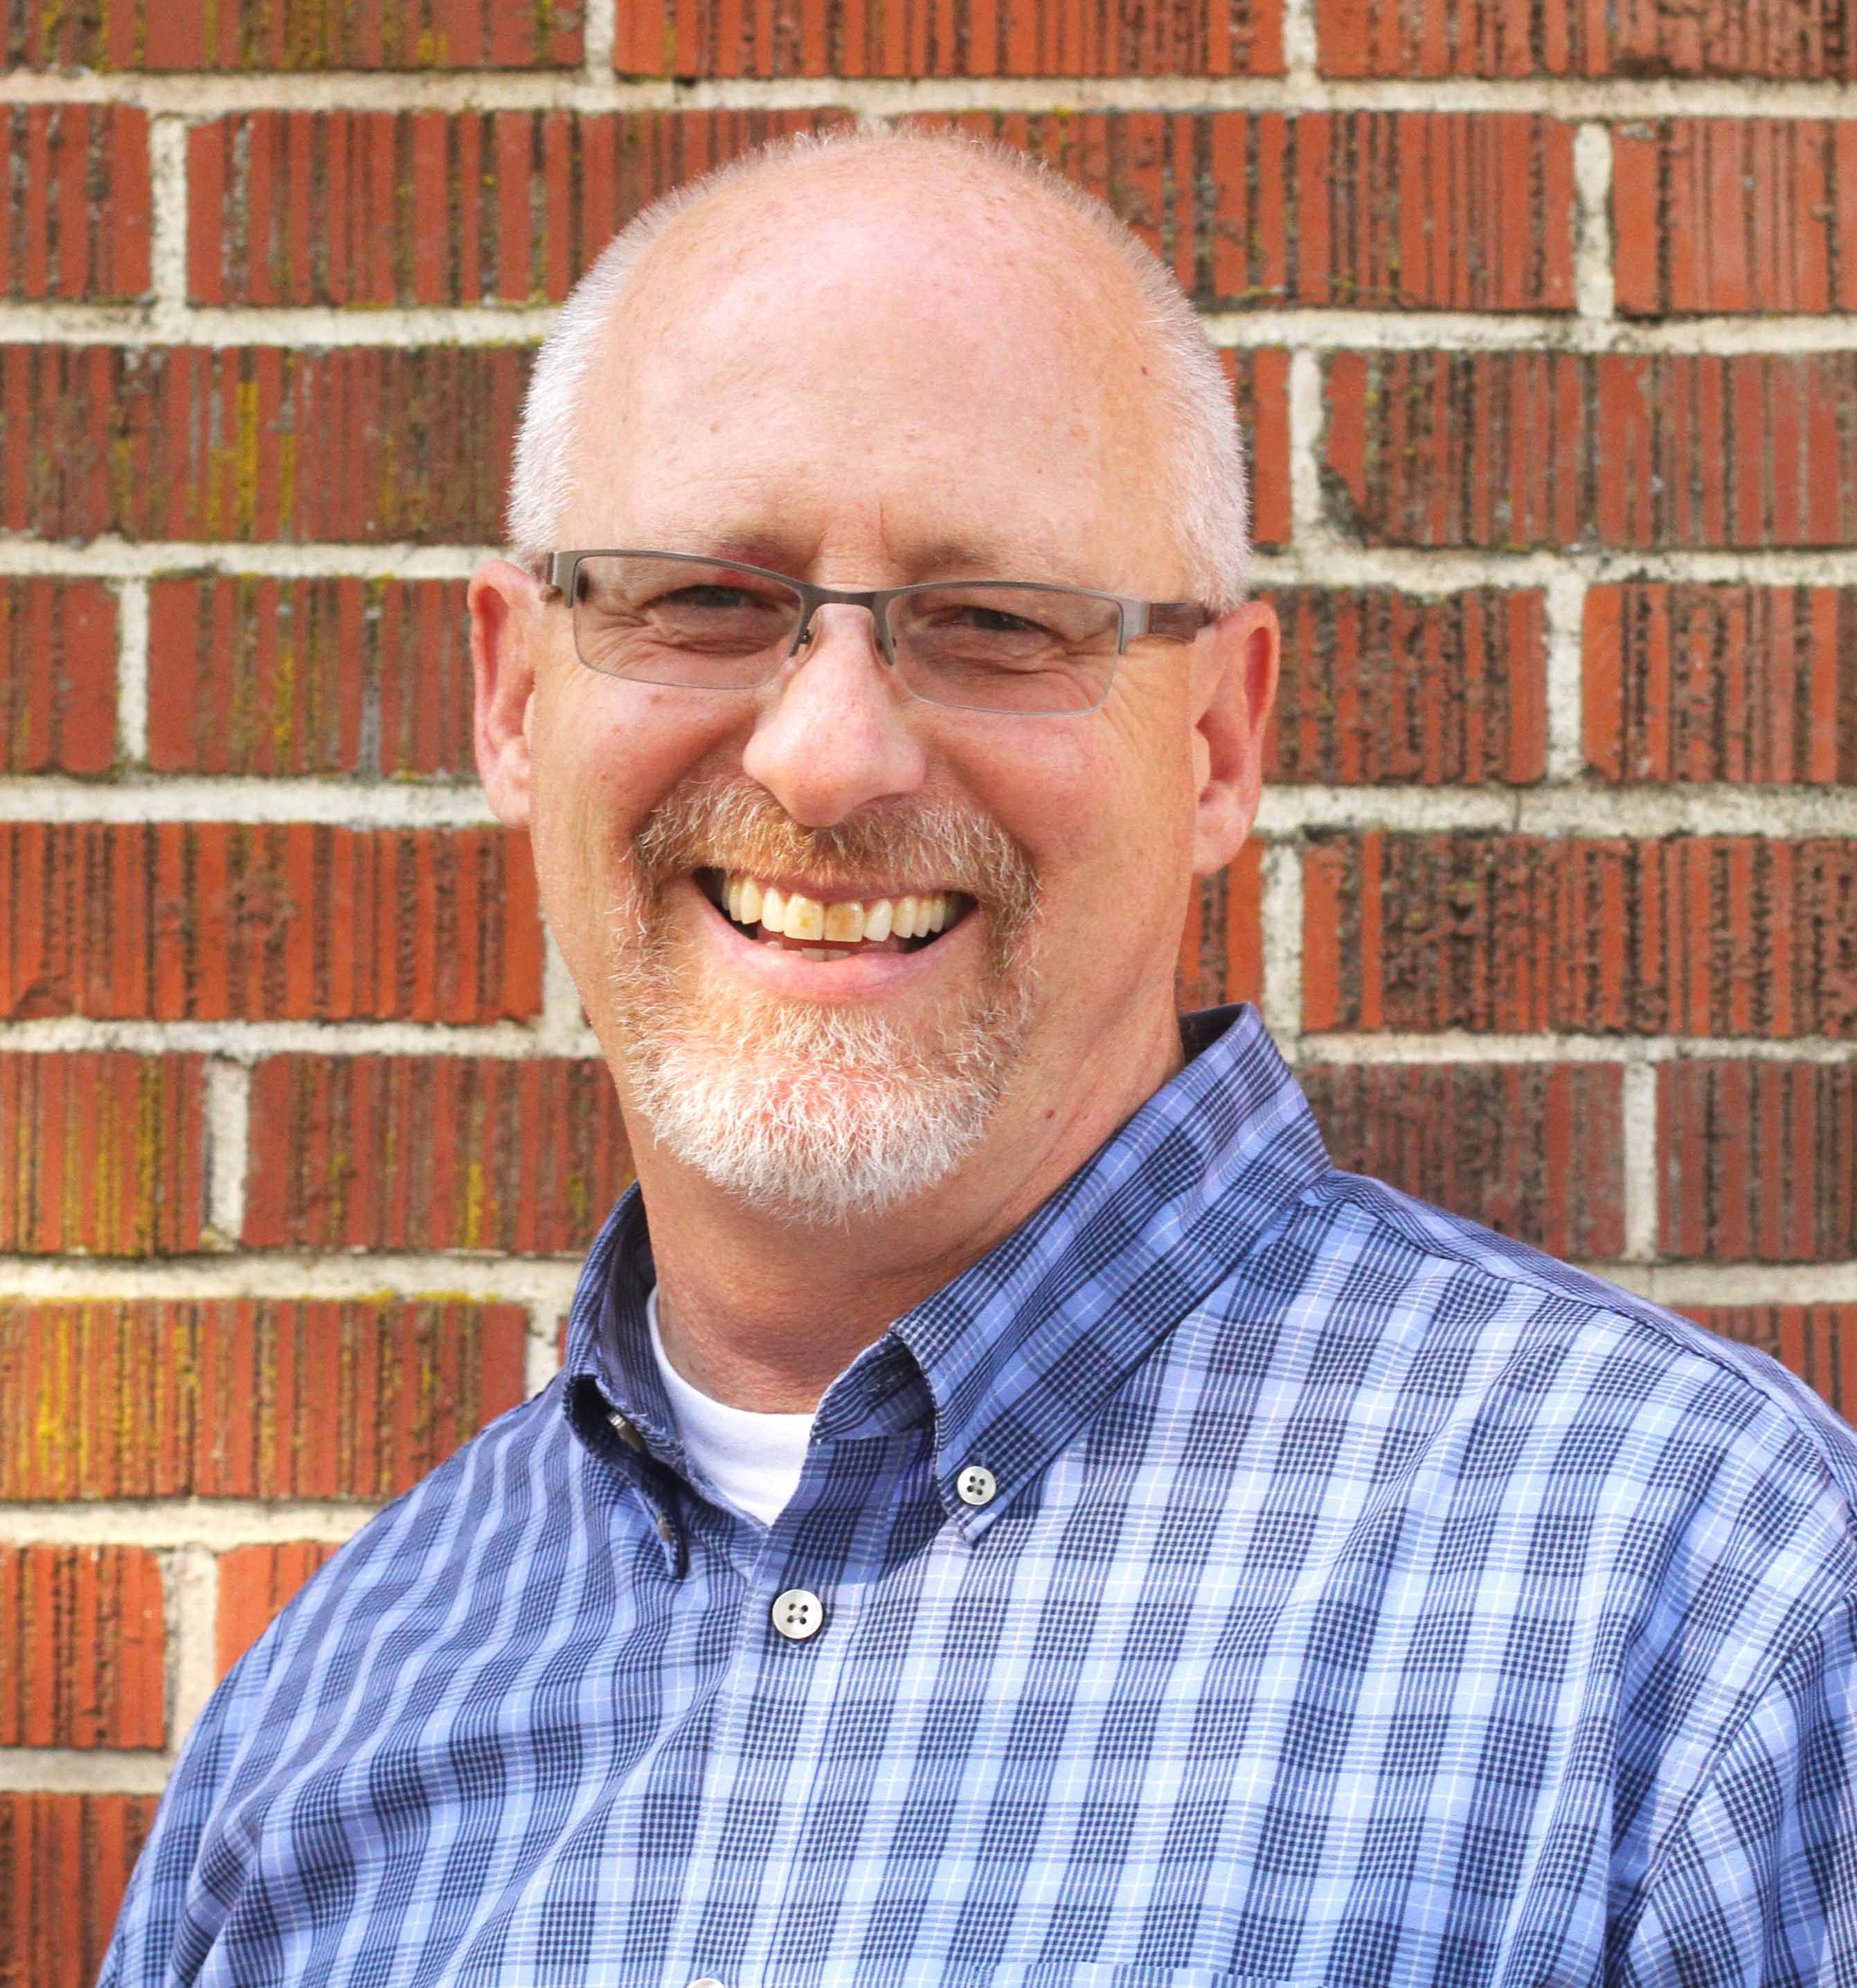 Republican and Director of College Public Safety Ron Noble has been elected to the Oregon State House of Representatives for District 24 after defeating Democrat Ken Moore.